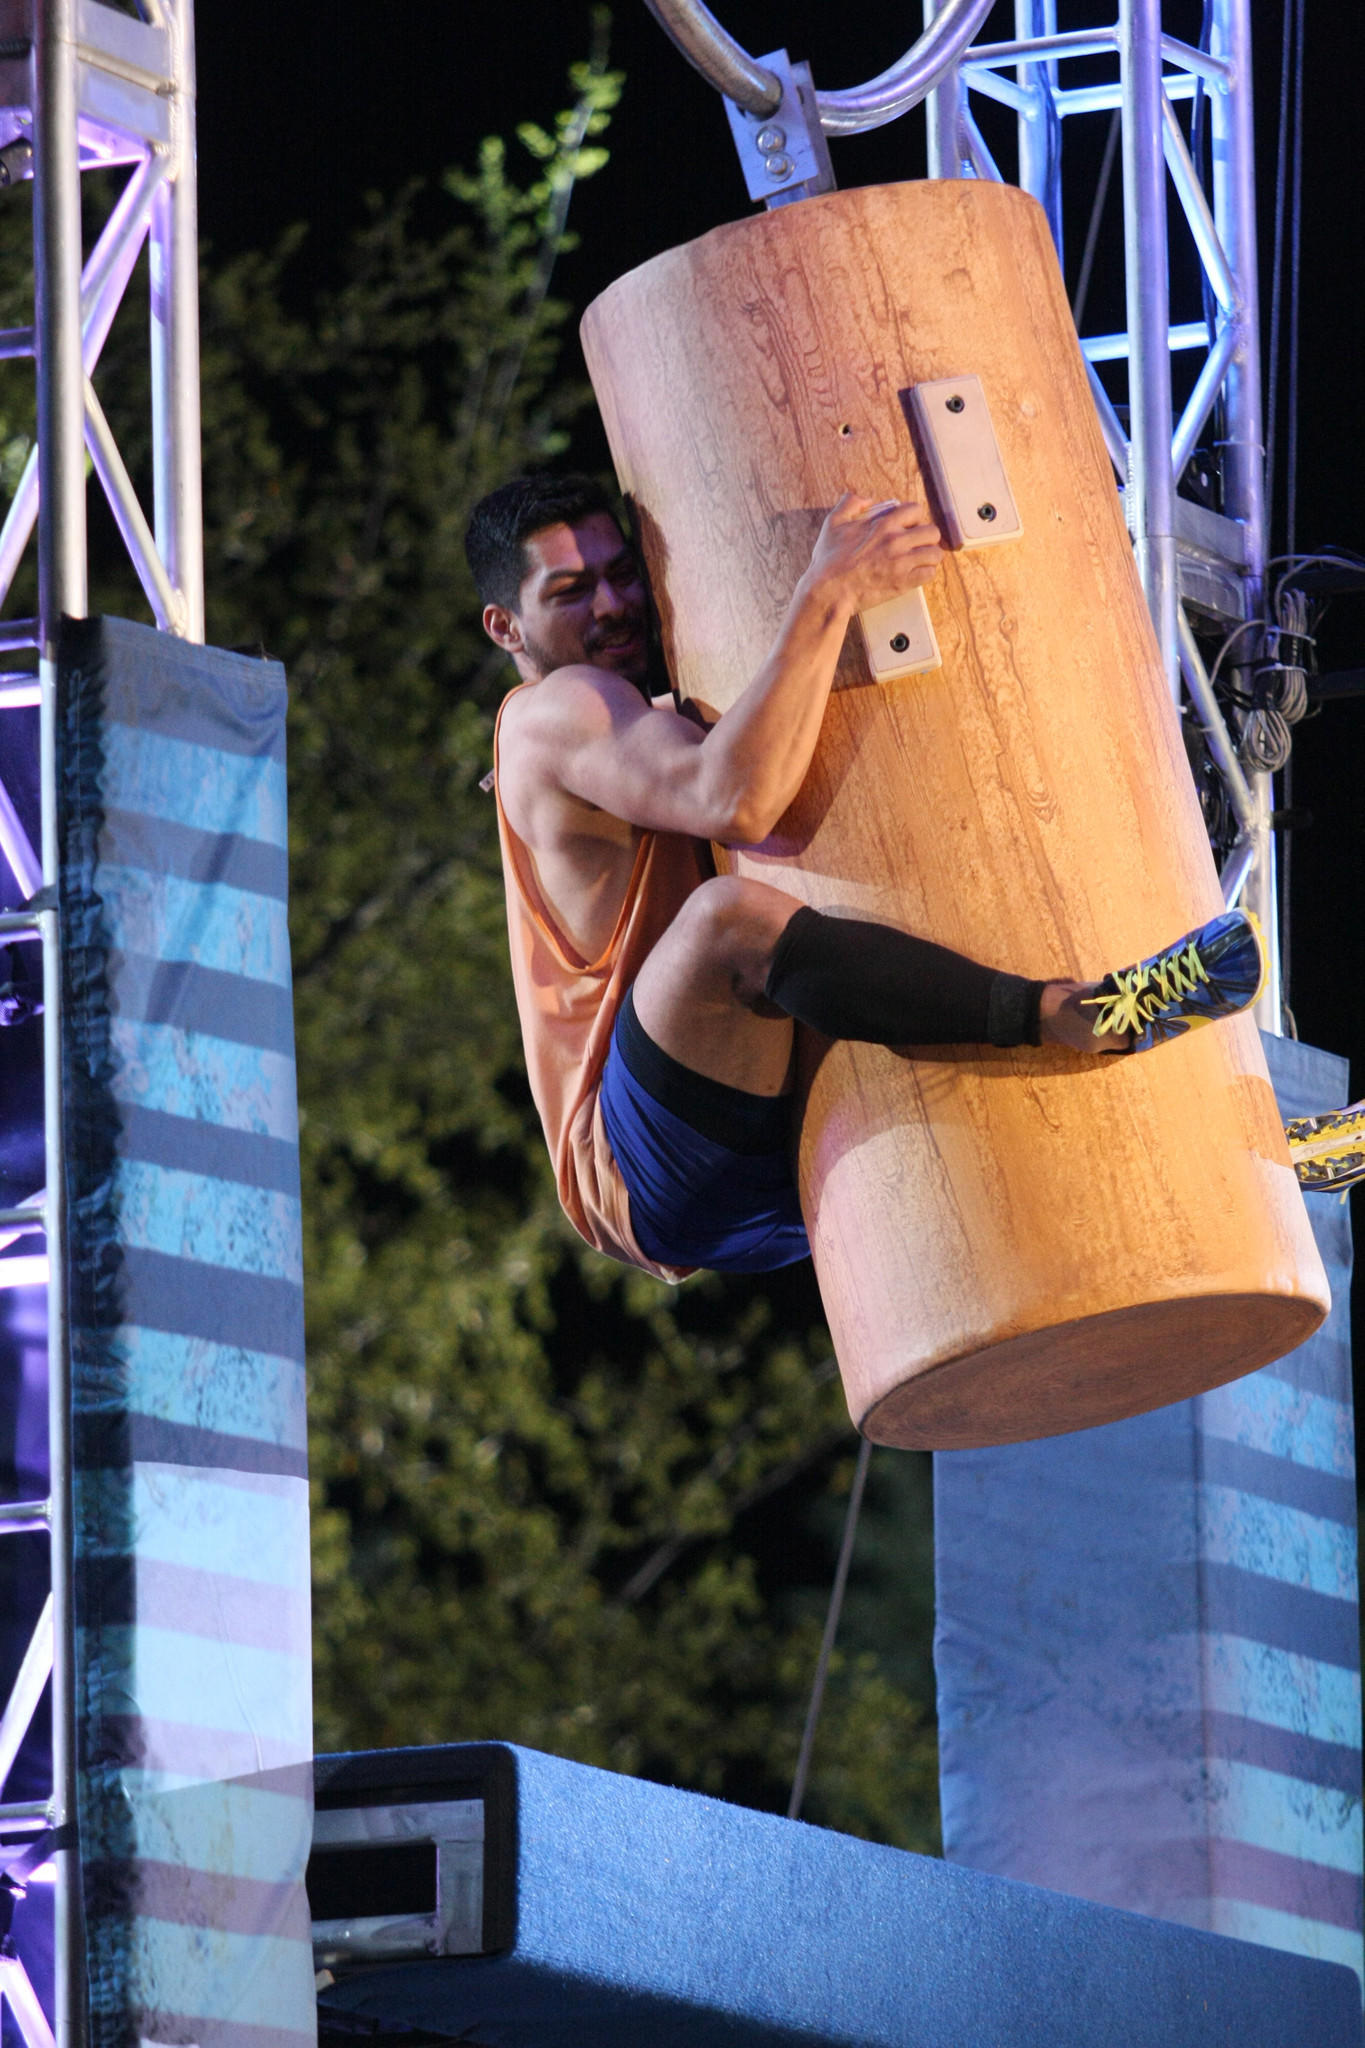 """Airing: 9 p.m. Mondays  What to expect: """"ANW"""" is multiple levels of adult-size jungle-gym-on-steriods challenges for body fat-less people. Hold on to that giant wooden cylindrical thing!  Guilty rating: 5. """"ANW"""" alternates between thrilling, hilarious (when people fall, often into water) and cheesy (certain athletes get random, weepy back stories). But let's be honest -- we all just like seeing people fall."""